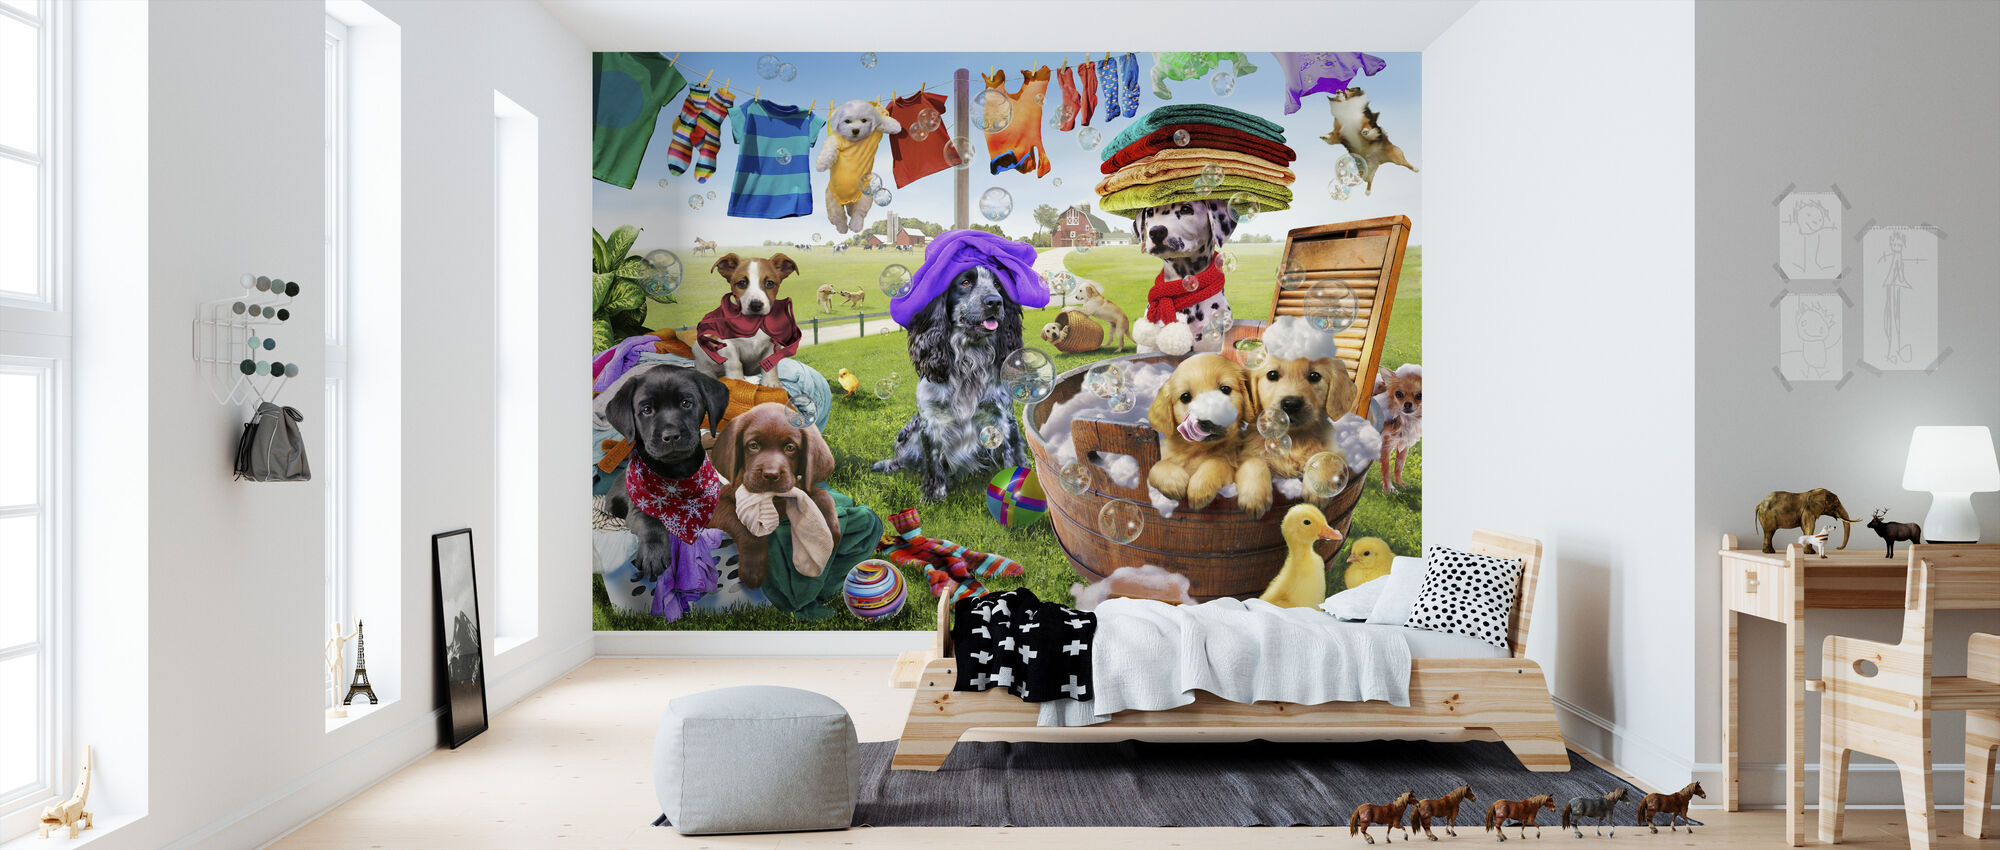 Puppies Playing - Wallpaper - Kids Room